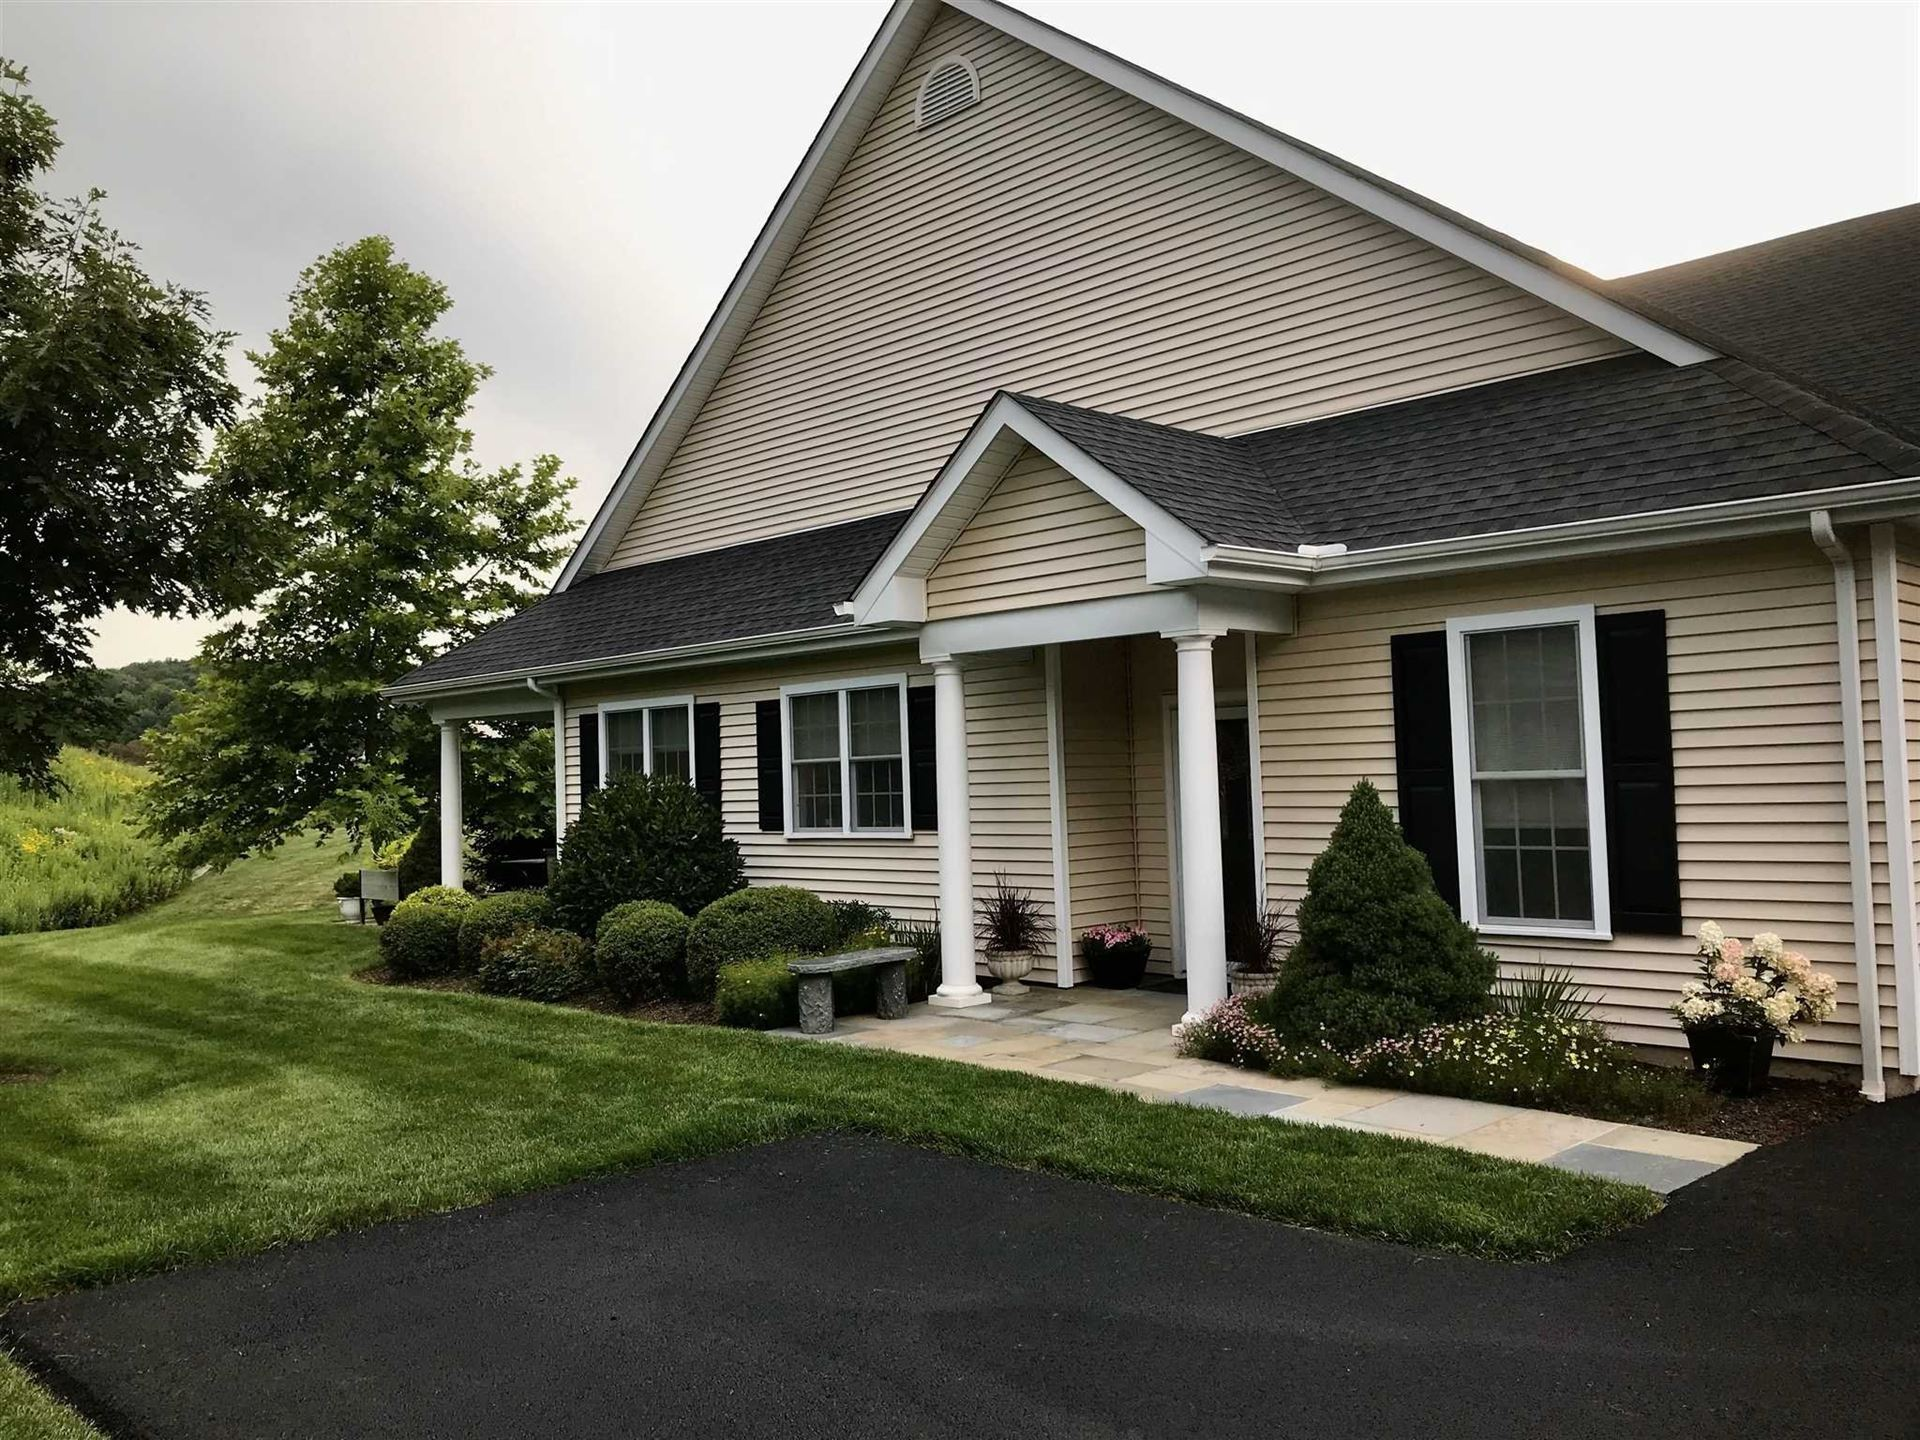 3 Norwegian W00D, Cold Spring, NY 10516 - #: 402412